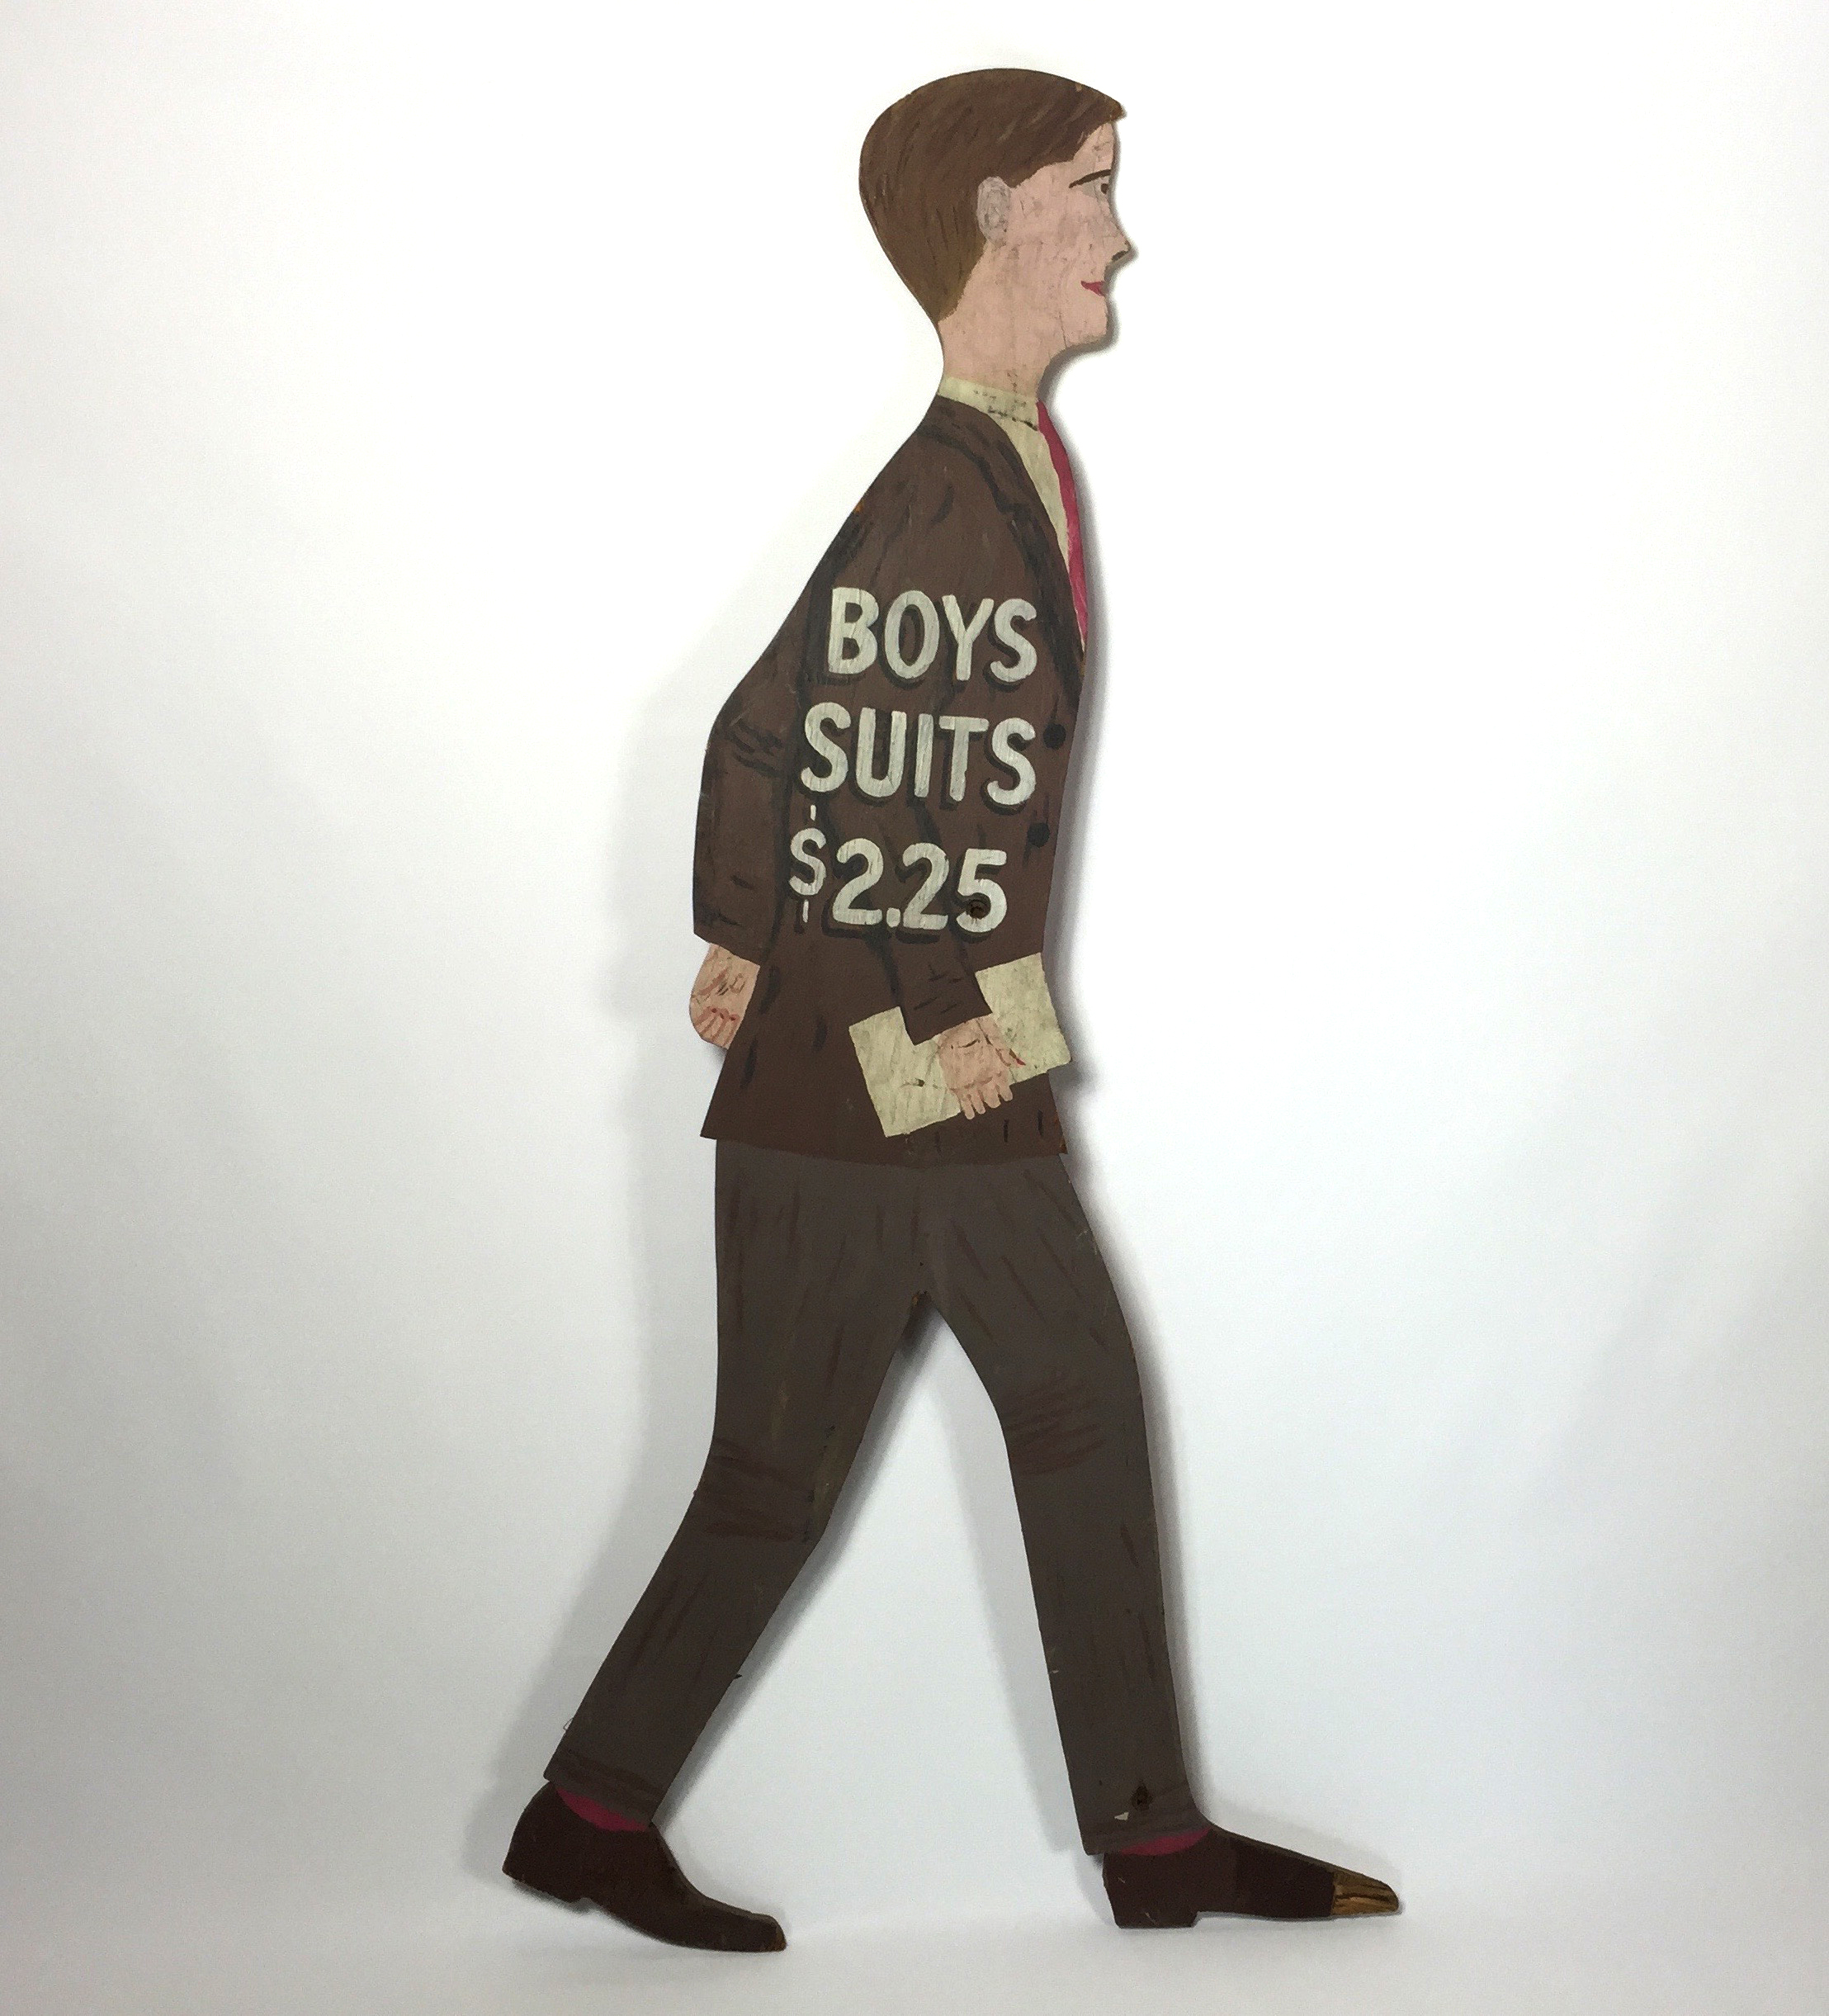 Vintage-Boys-Suits-Sign-PS-2-1.jpg